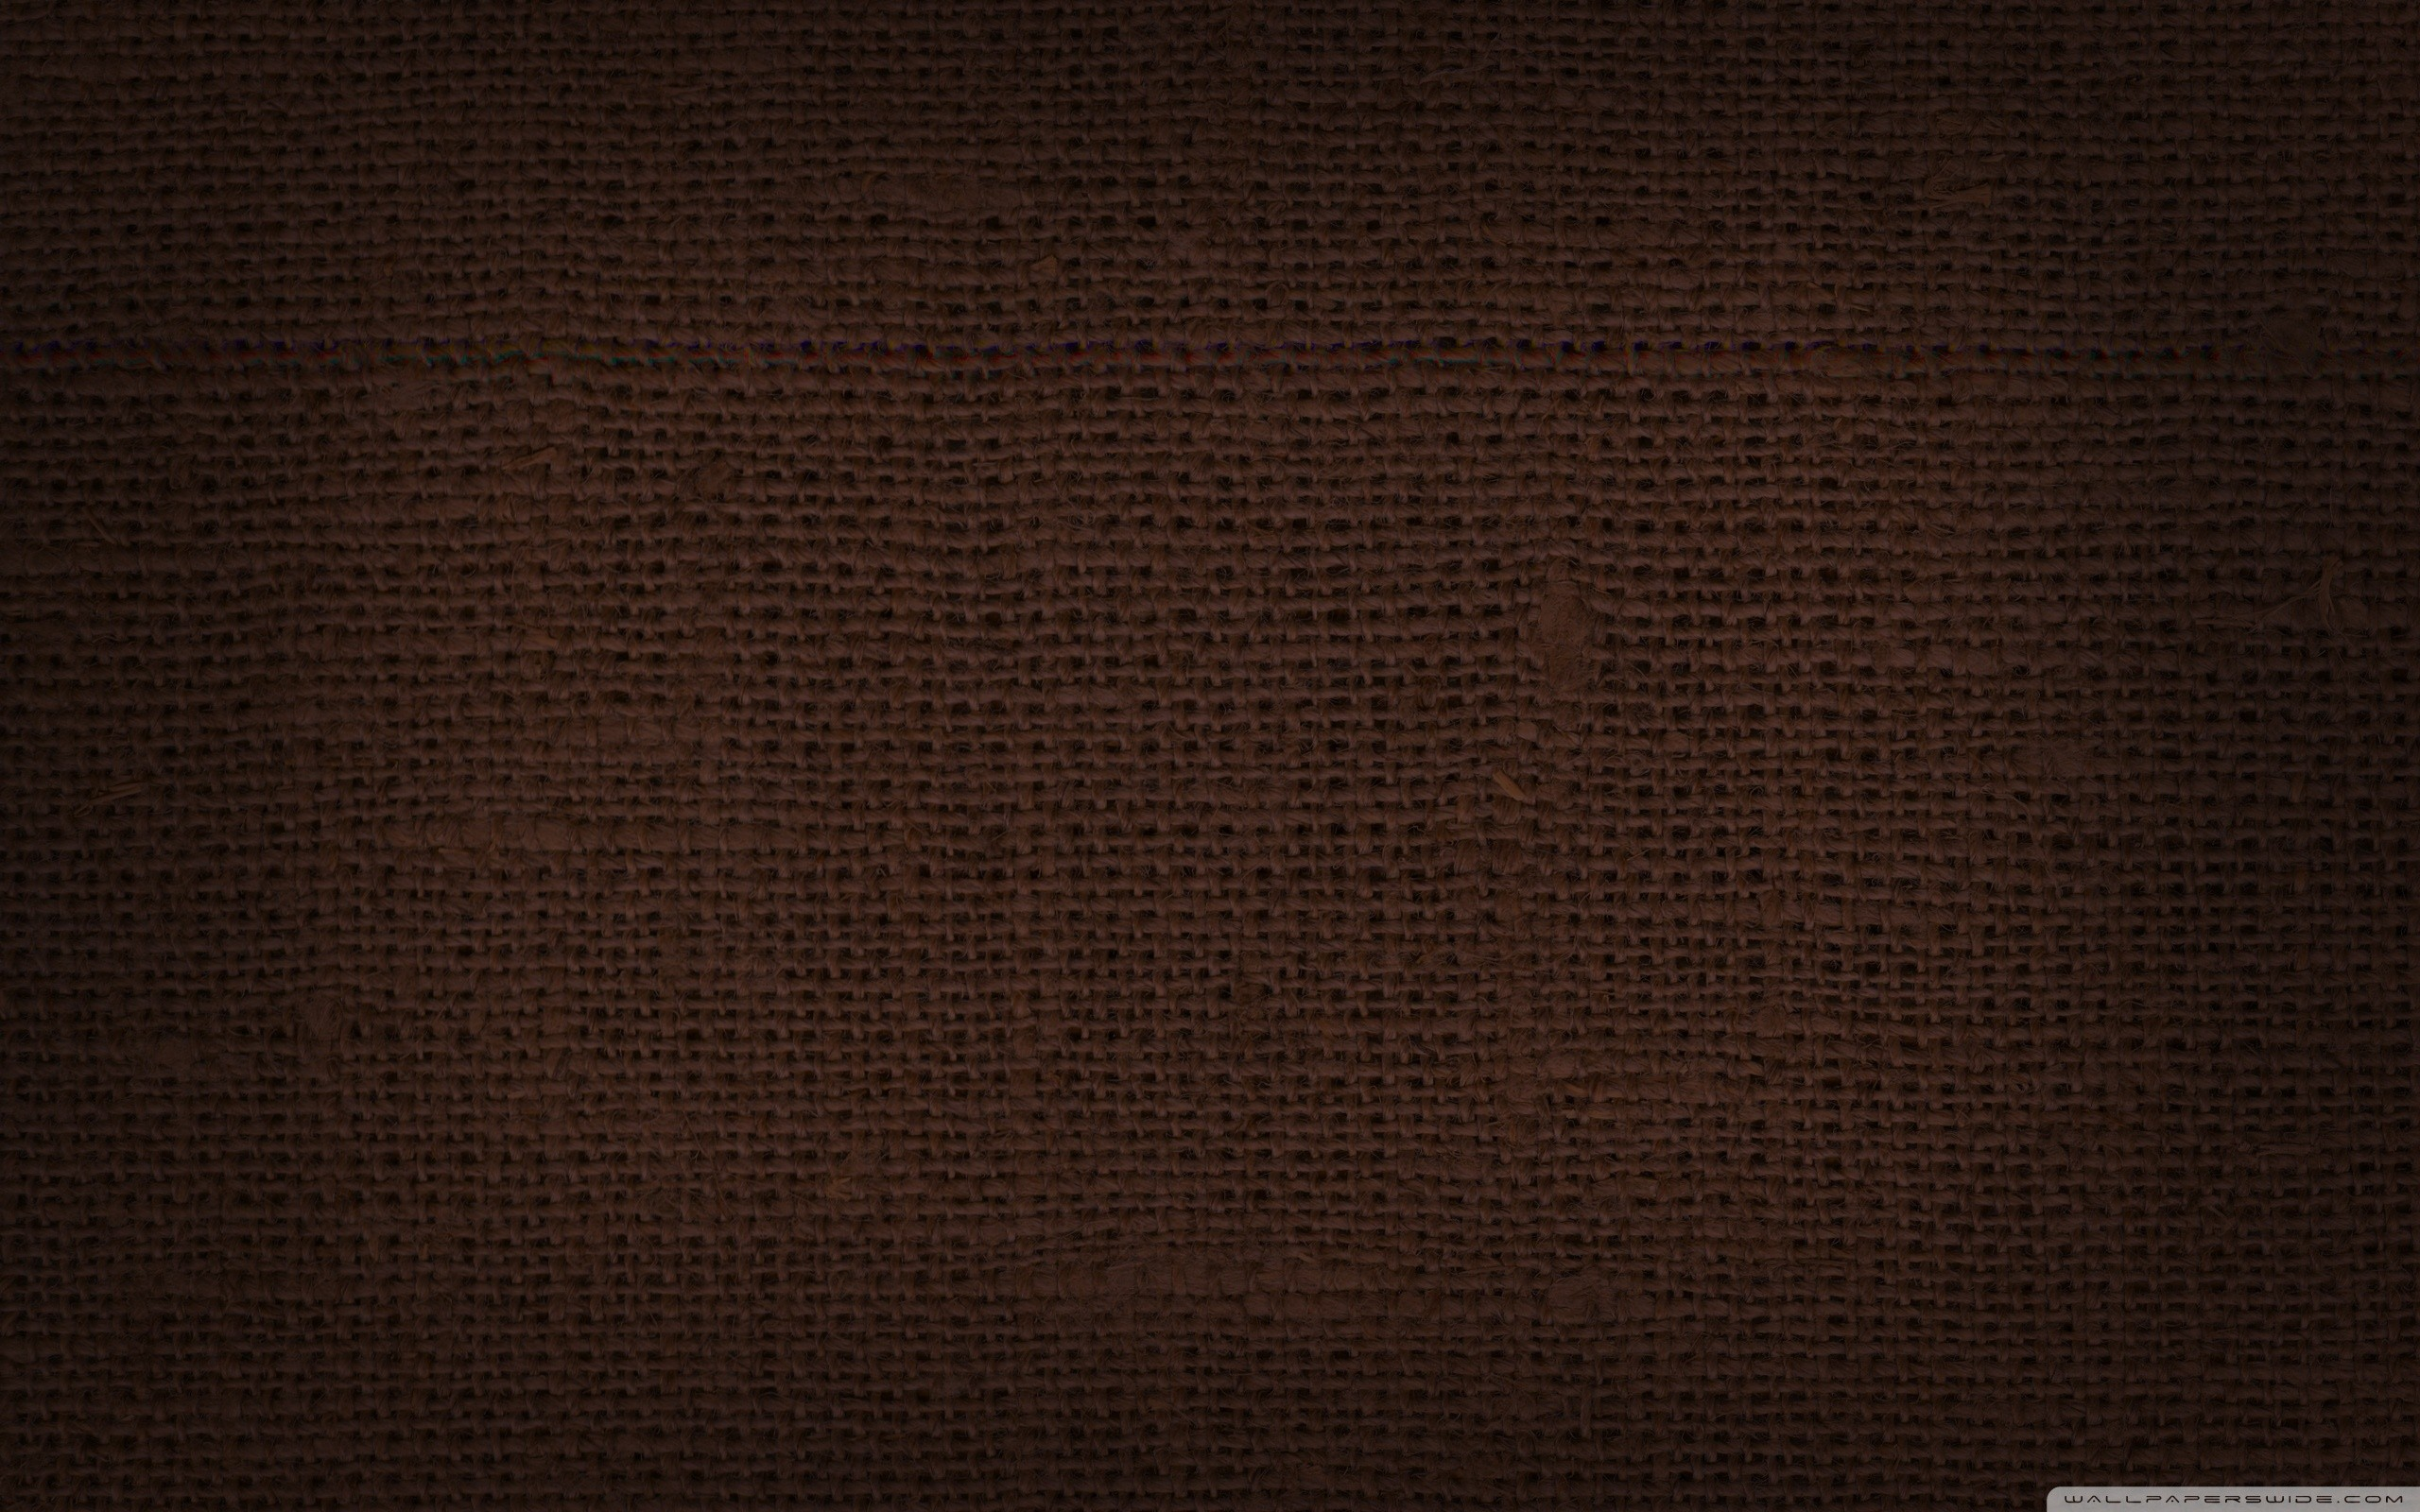 Brown wallpaper download free awesome full hd wallpapers for desktop mobile laptop in any - Browning wallpaper ...